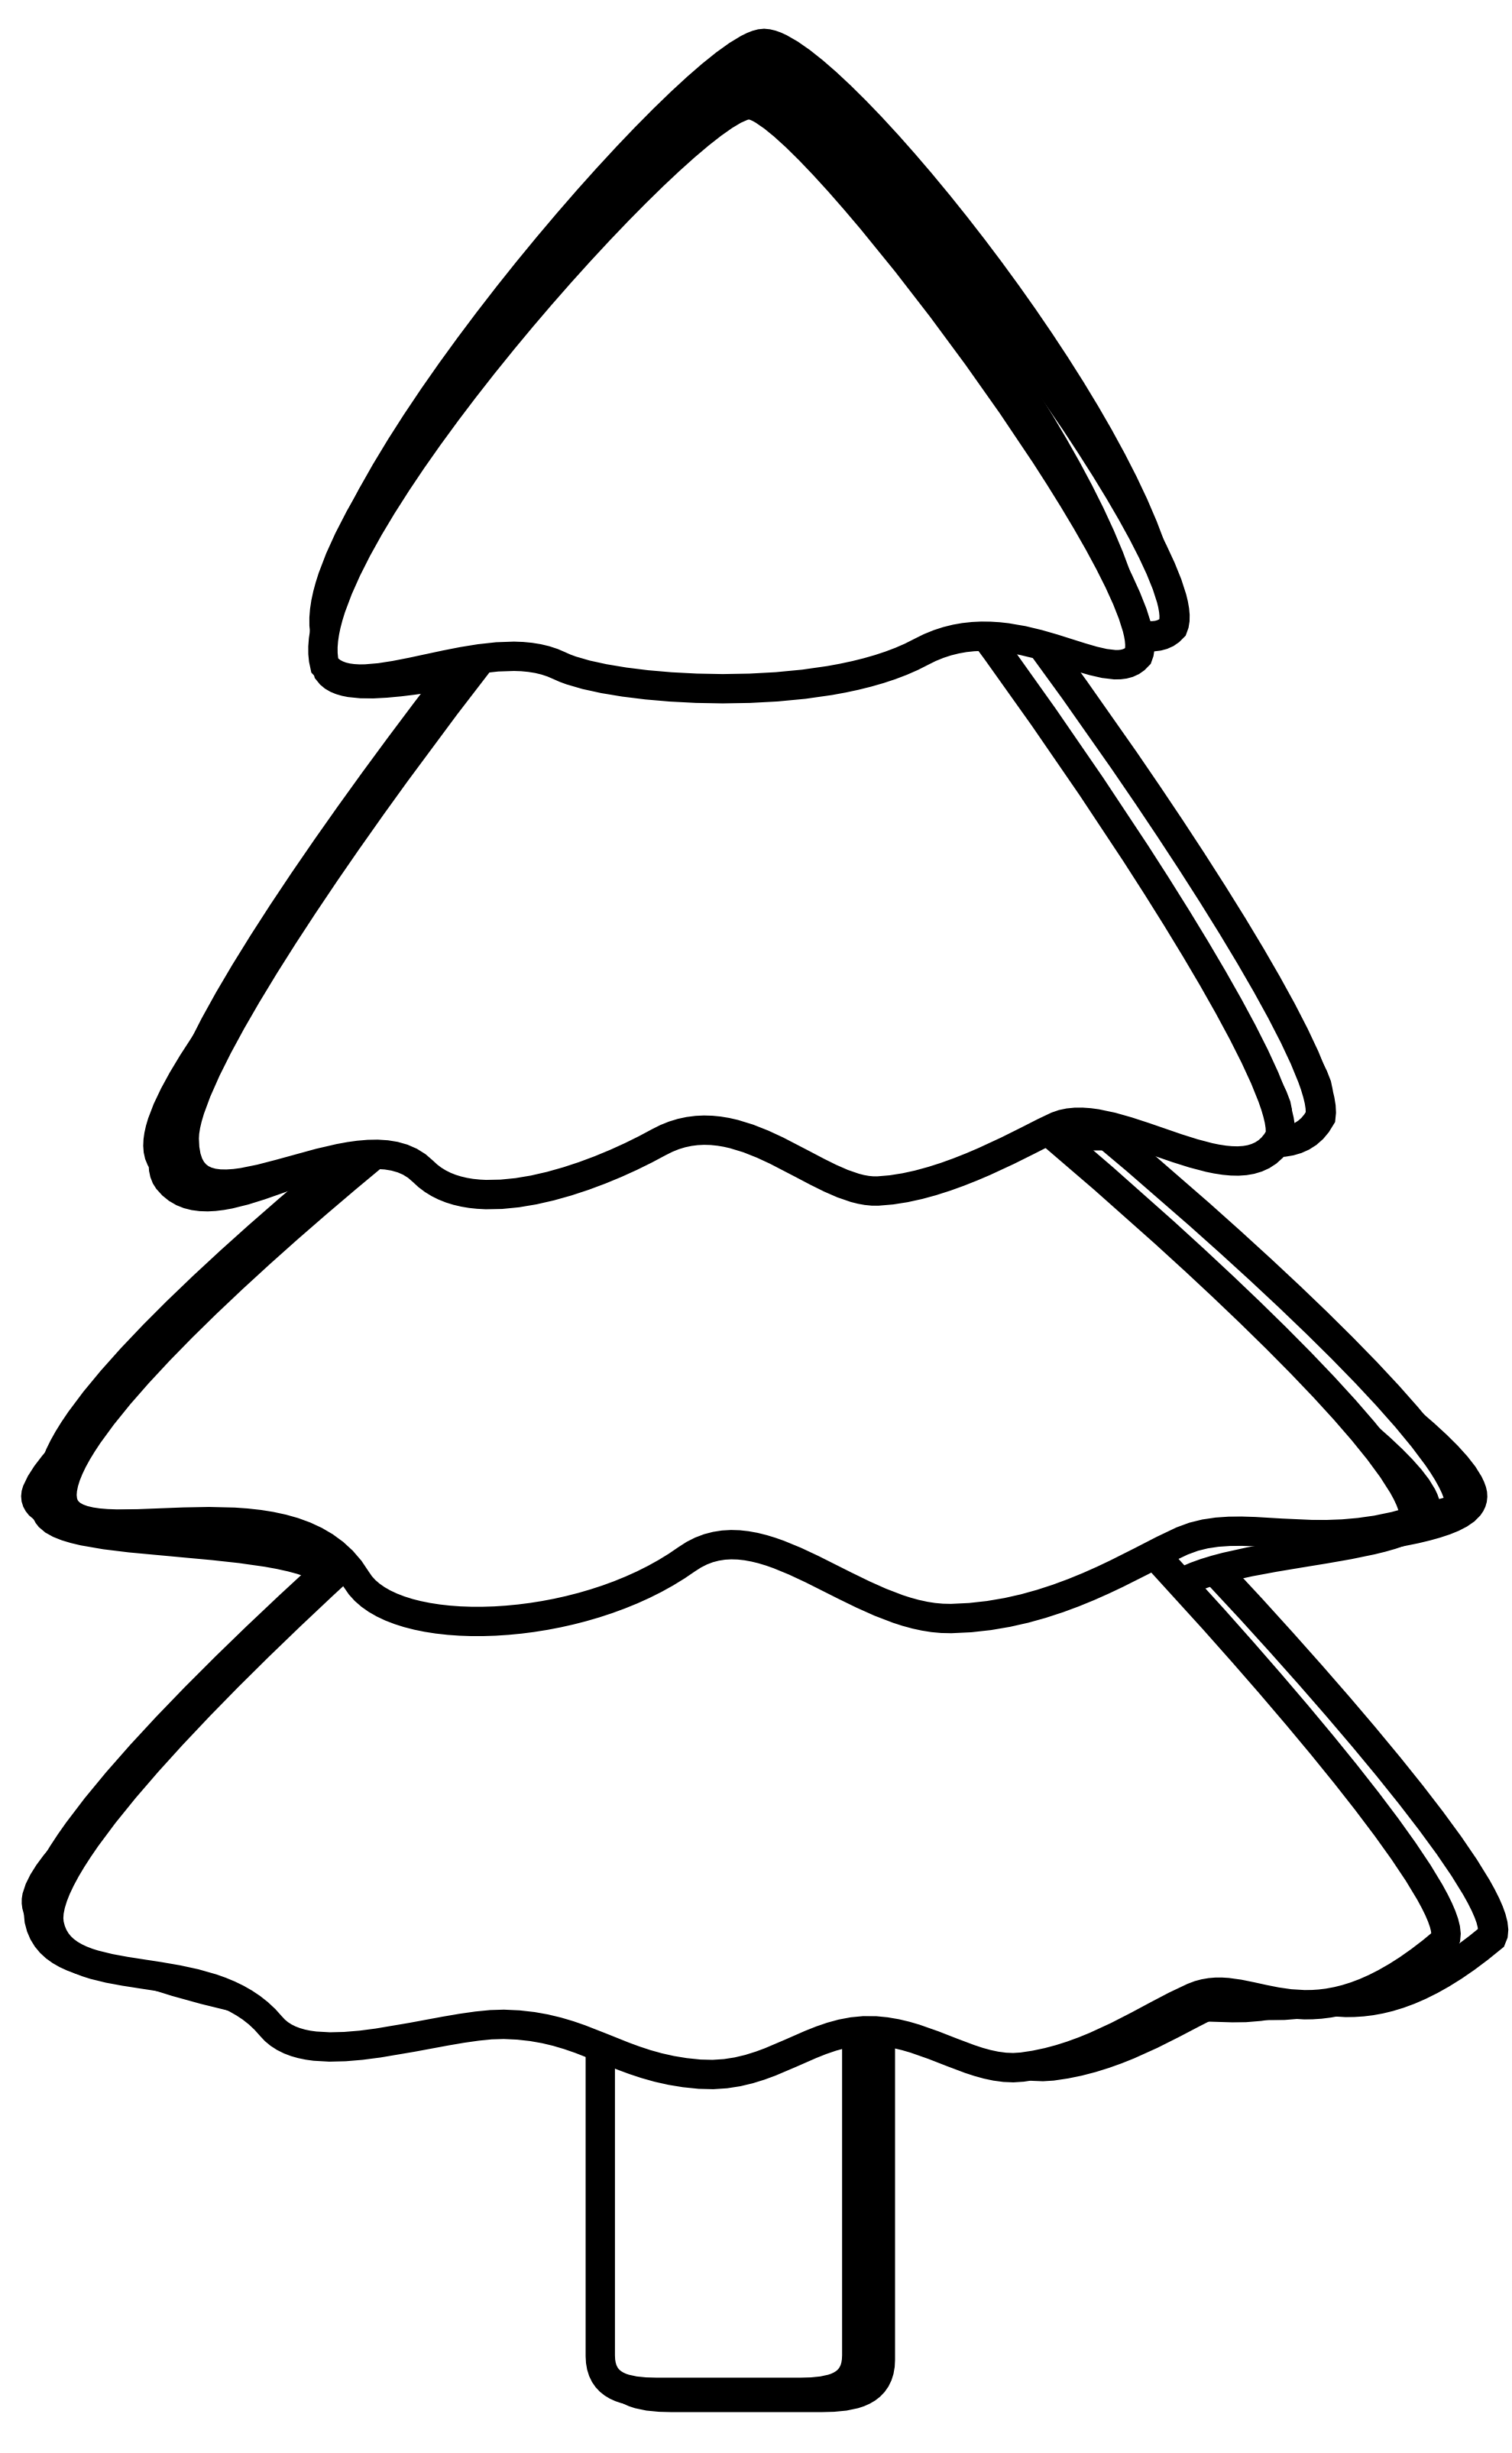 Apple Clipart Black And White 2.